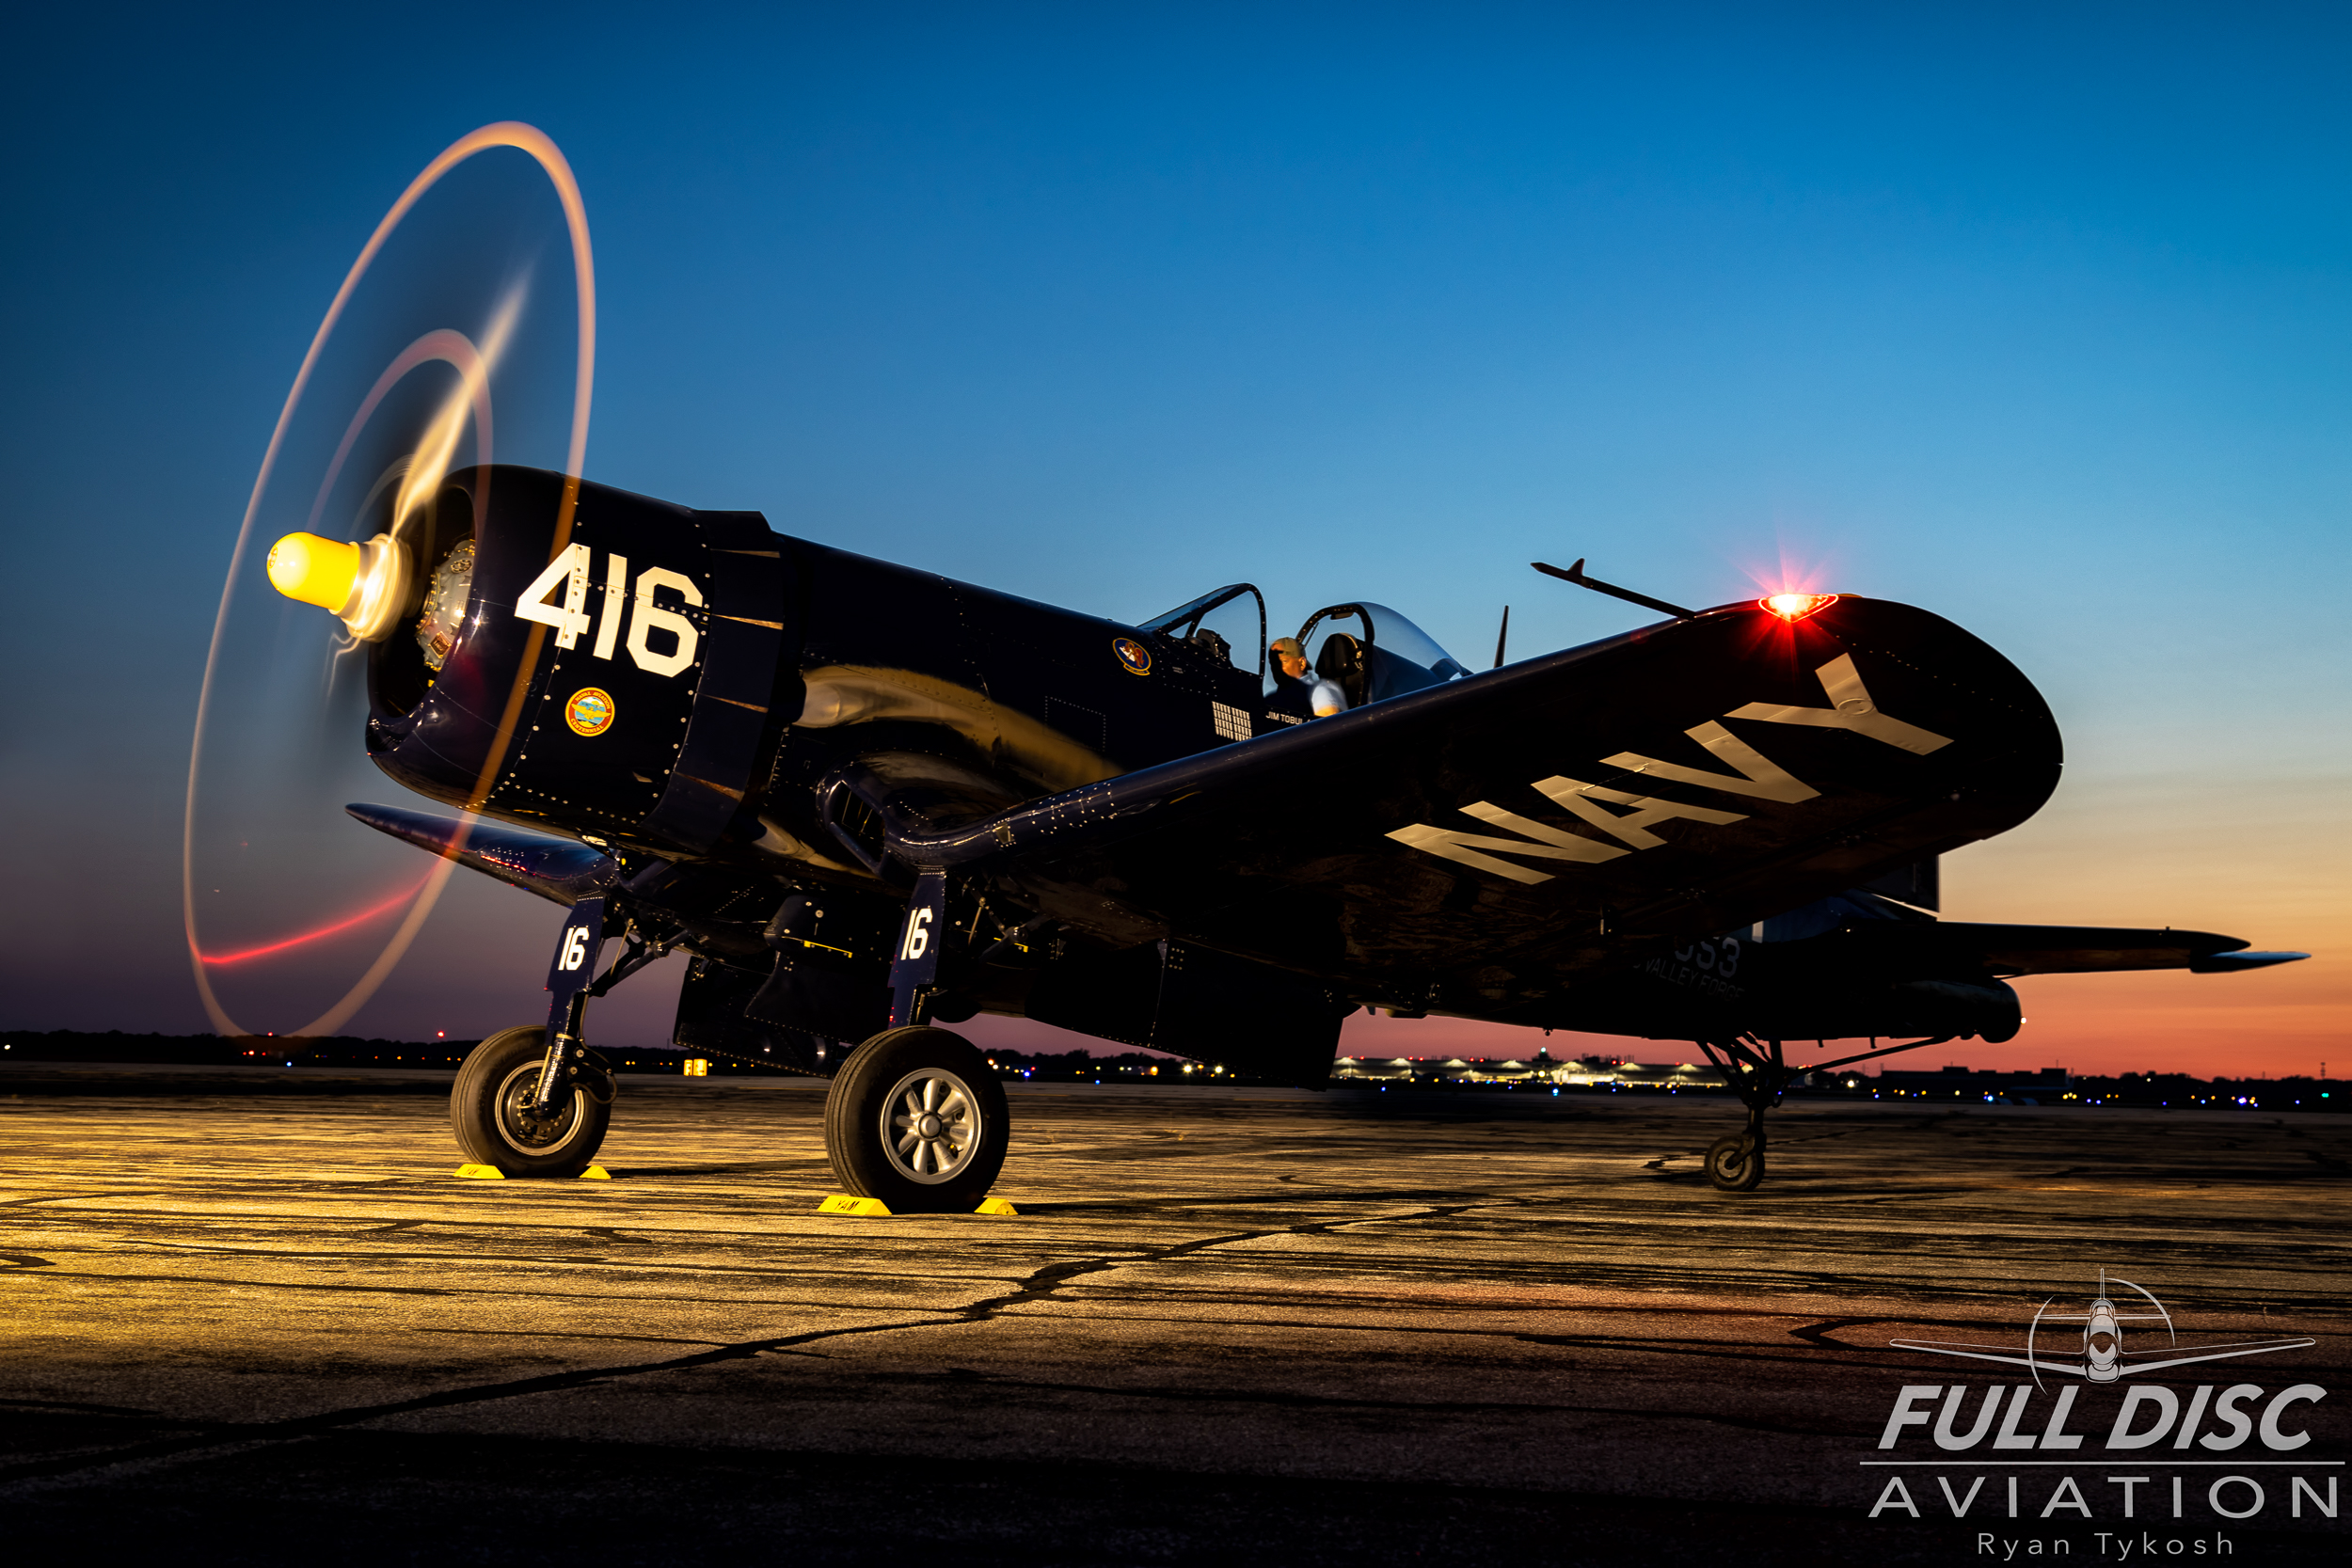 ClassOf45_FullDiscAviation_RyanTykosh_August 01, 2019_09.jpg